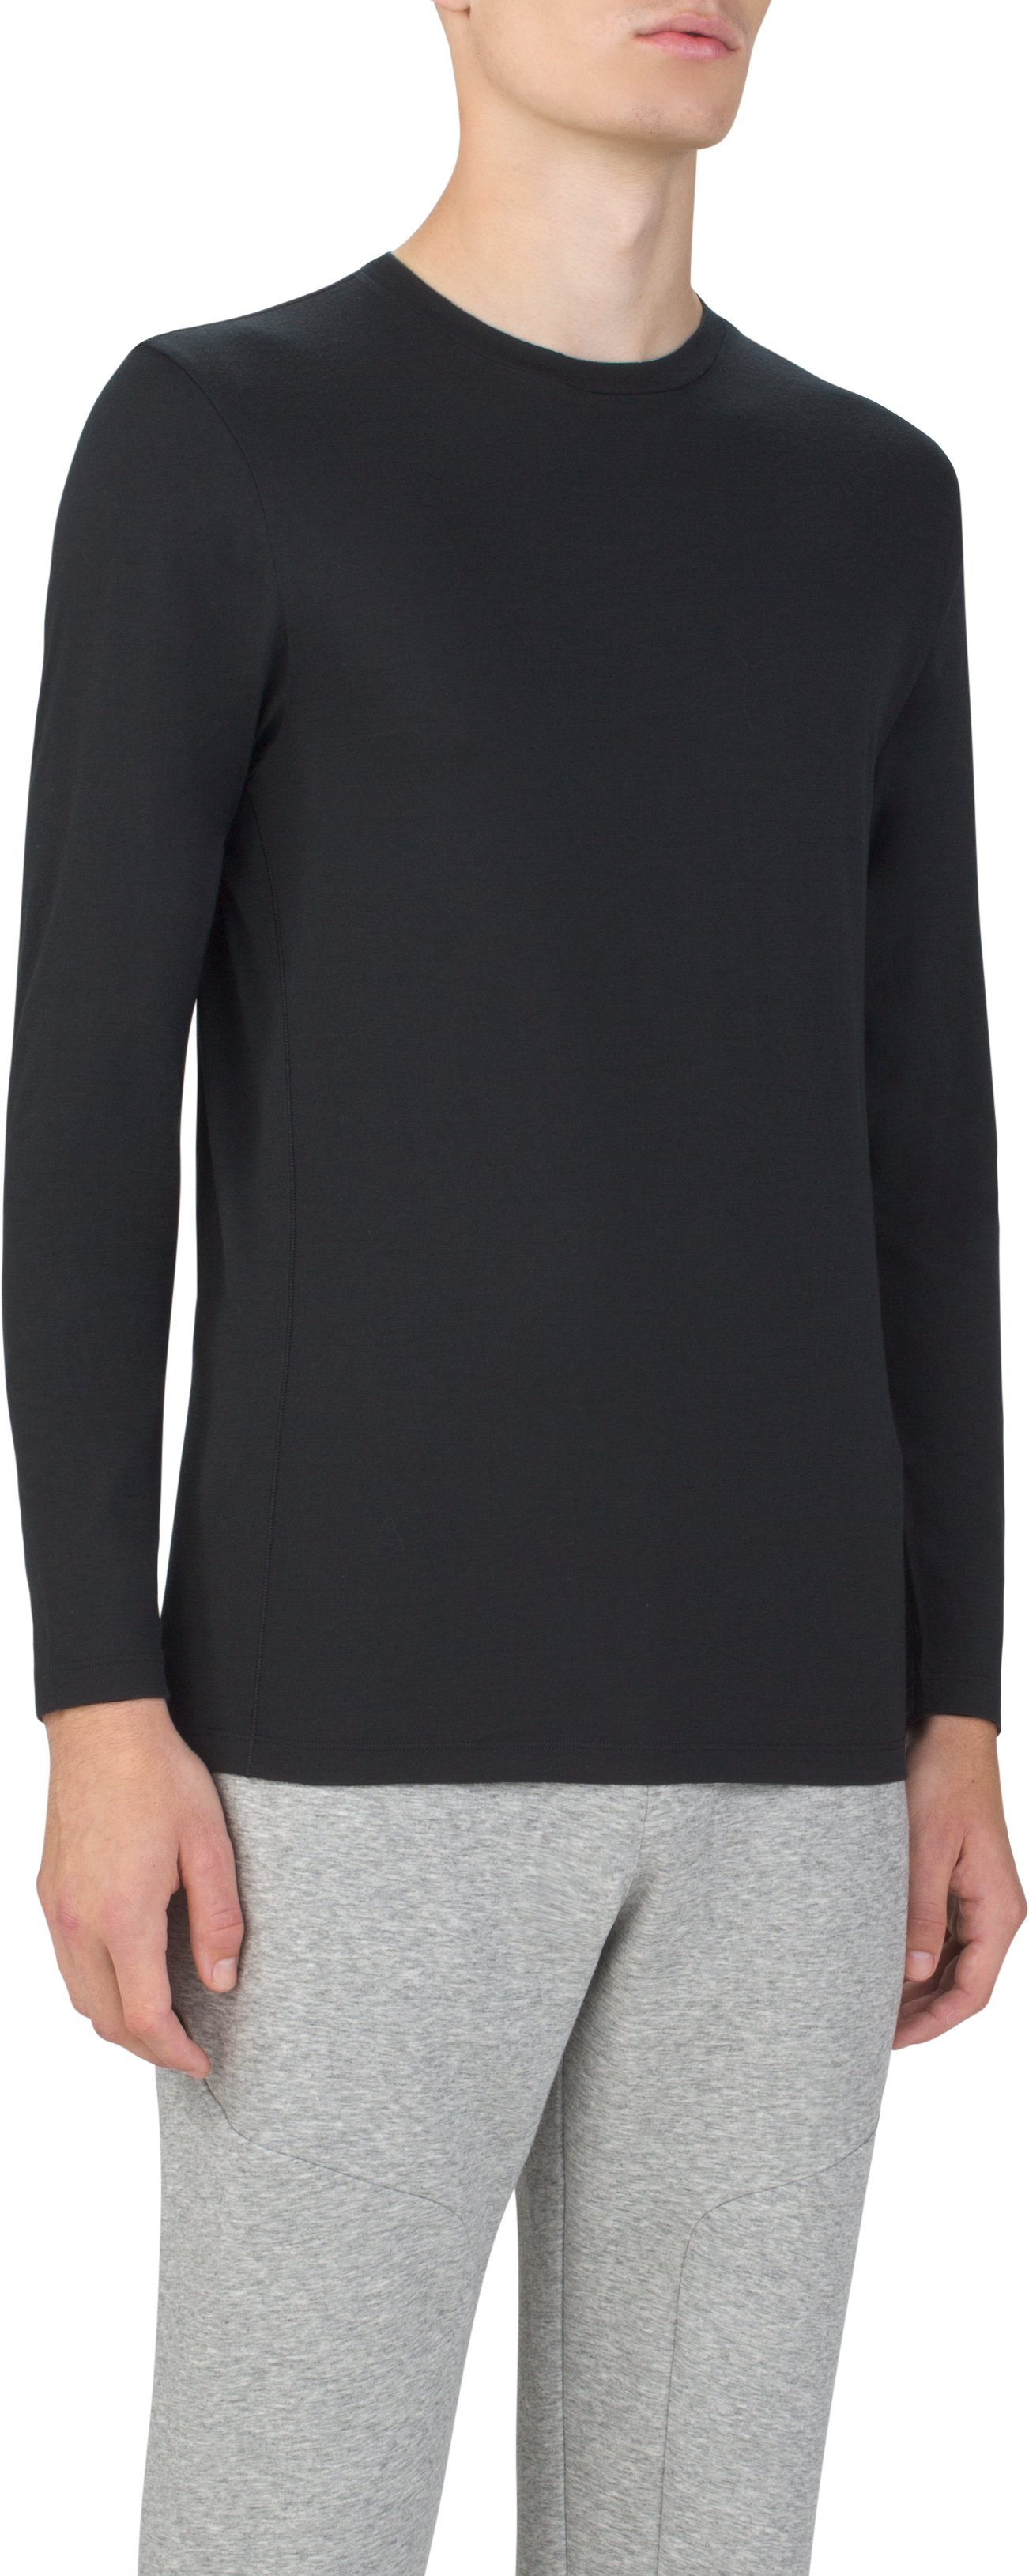 Men's Prime Long Sleeve Crew, Black ,